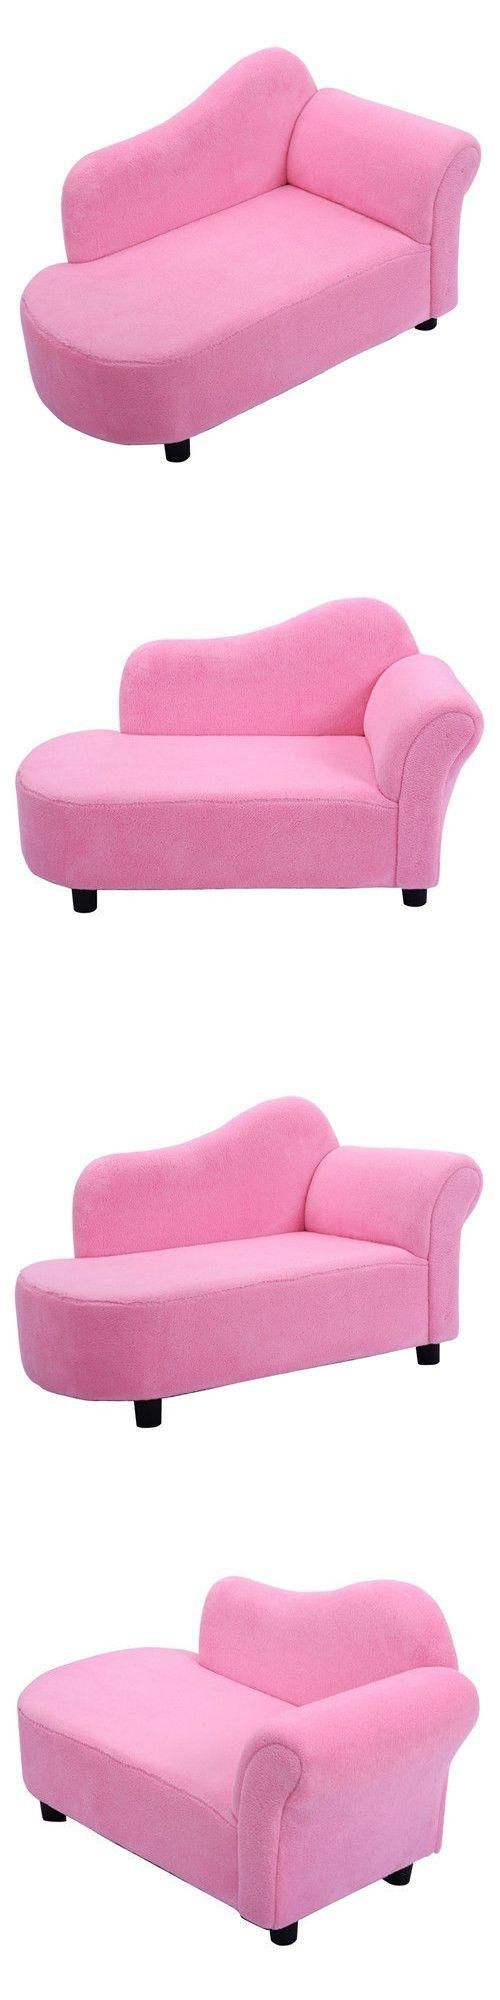 Best 10+ Toddler Lounge Chair Ideas On Pinterest | Childrens Sofa For Kids Sofa Chair And Ottoman Set Zebra (View 17 of 20)